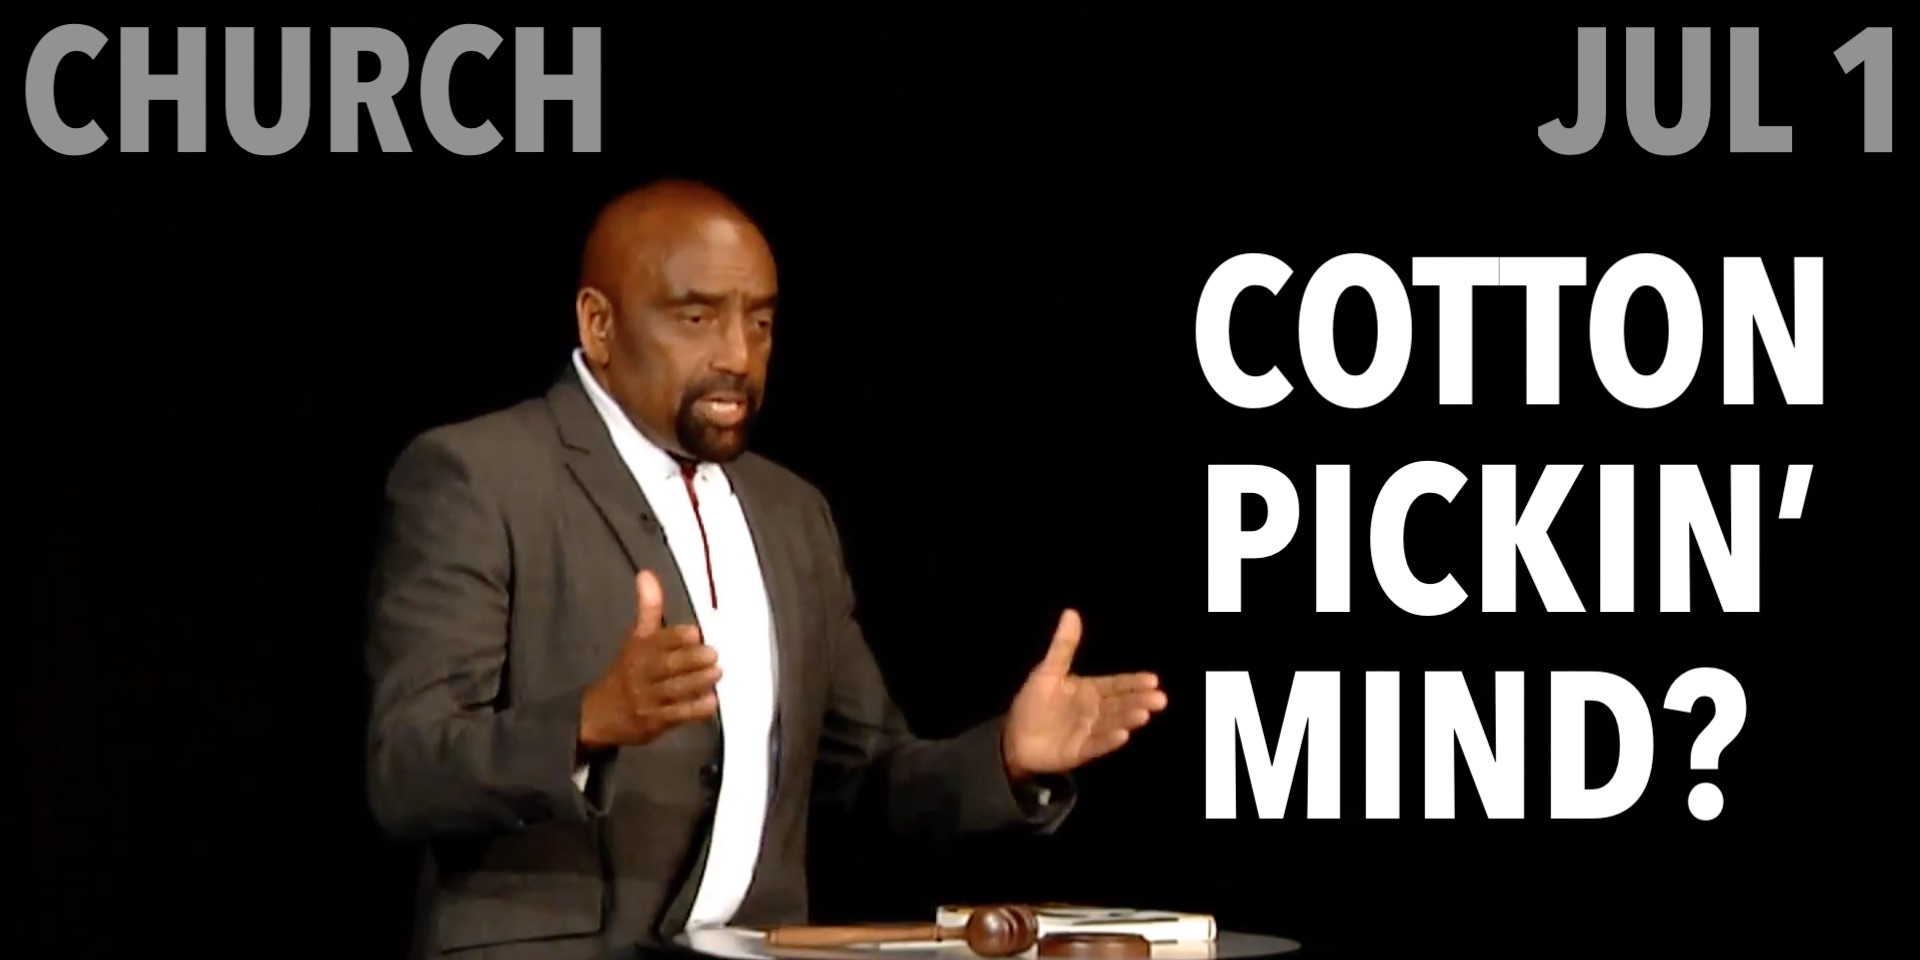 Church: Are you outta your cotton-pickin' mind?